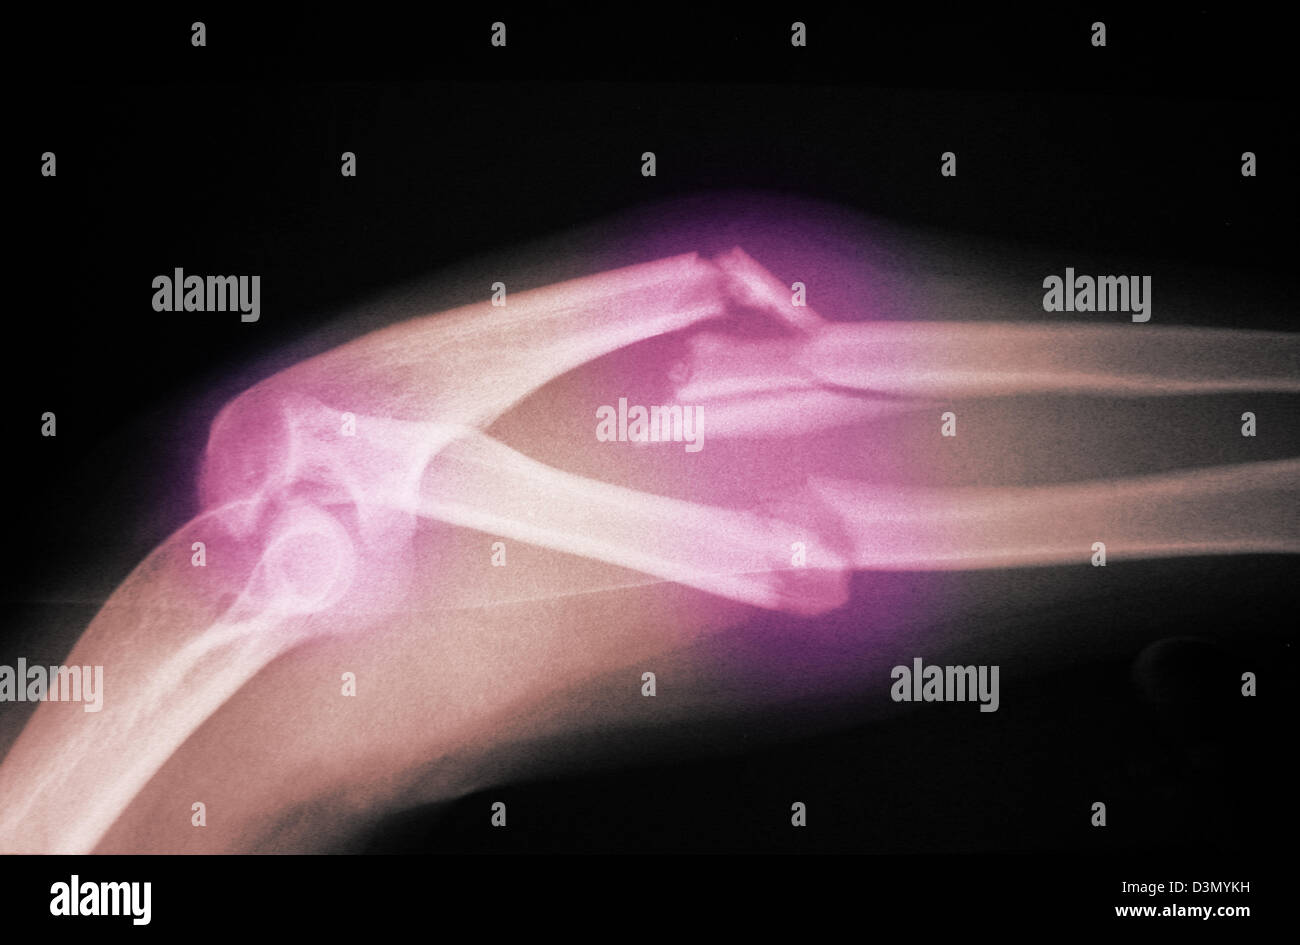 x-ray showing a severely angulated and comminuted fracture of the  forearm - Stock Image